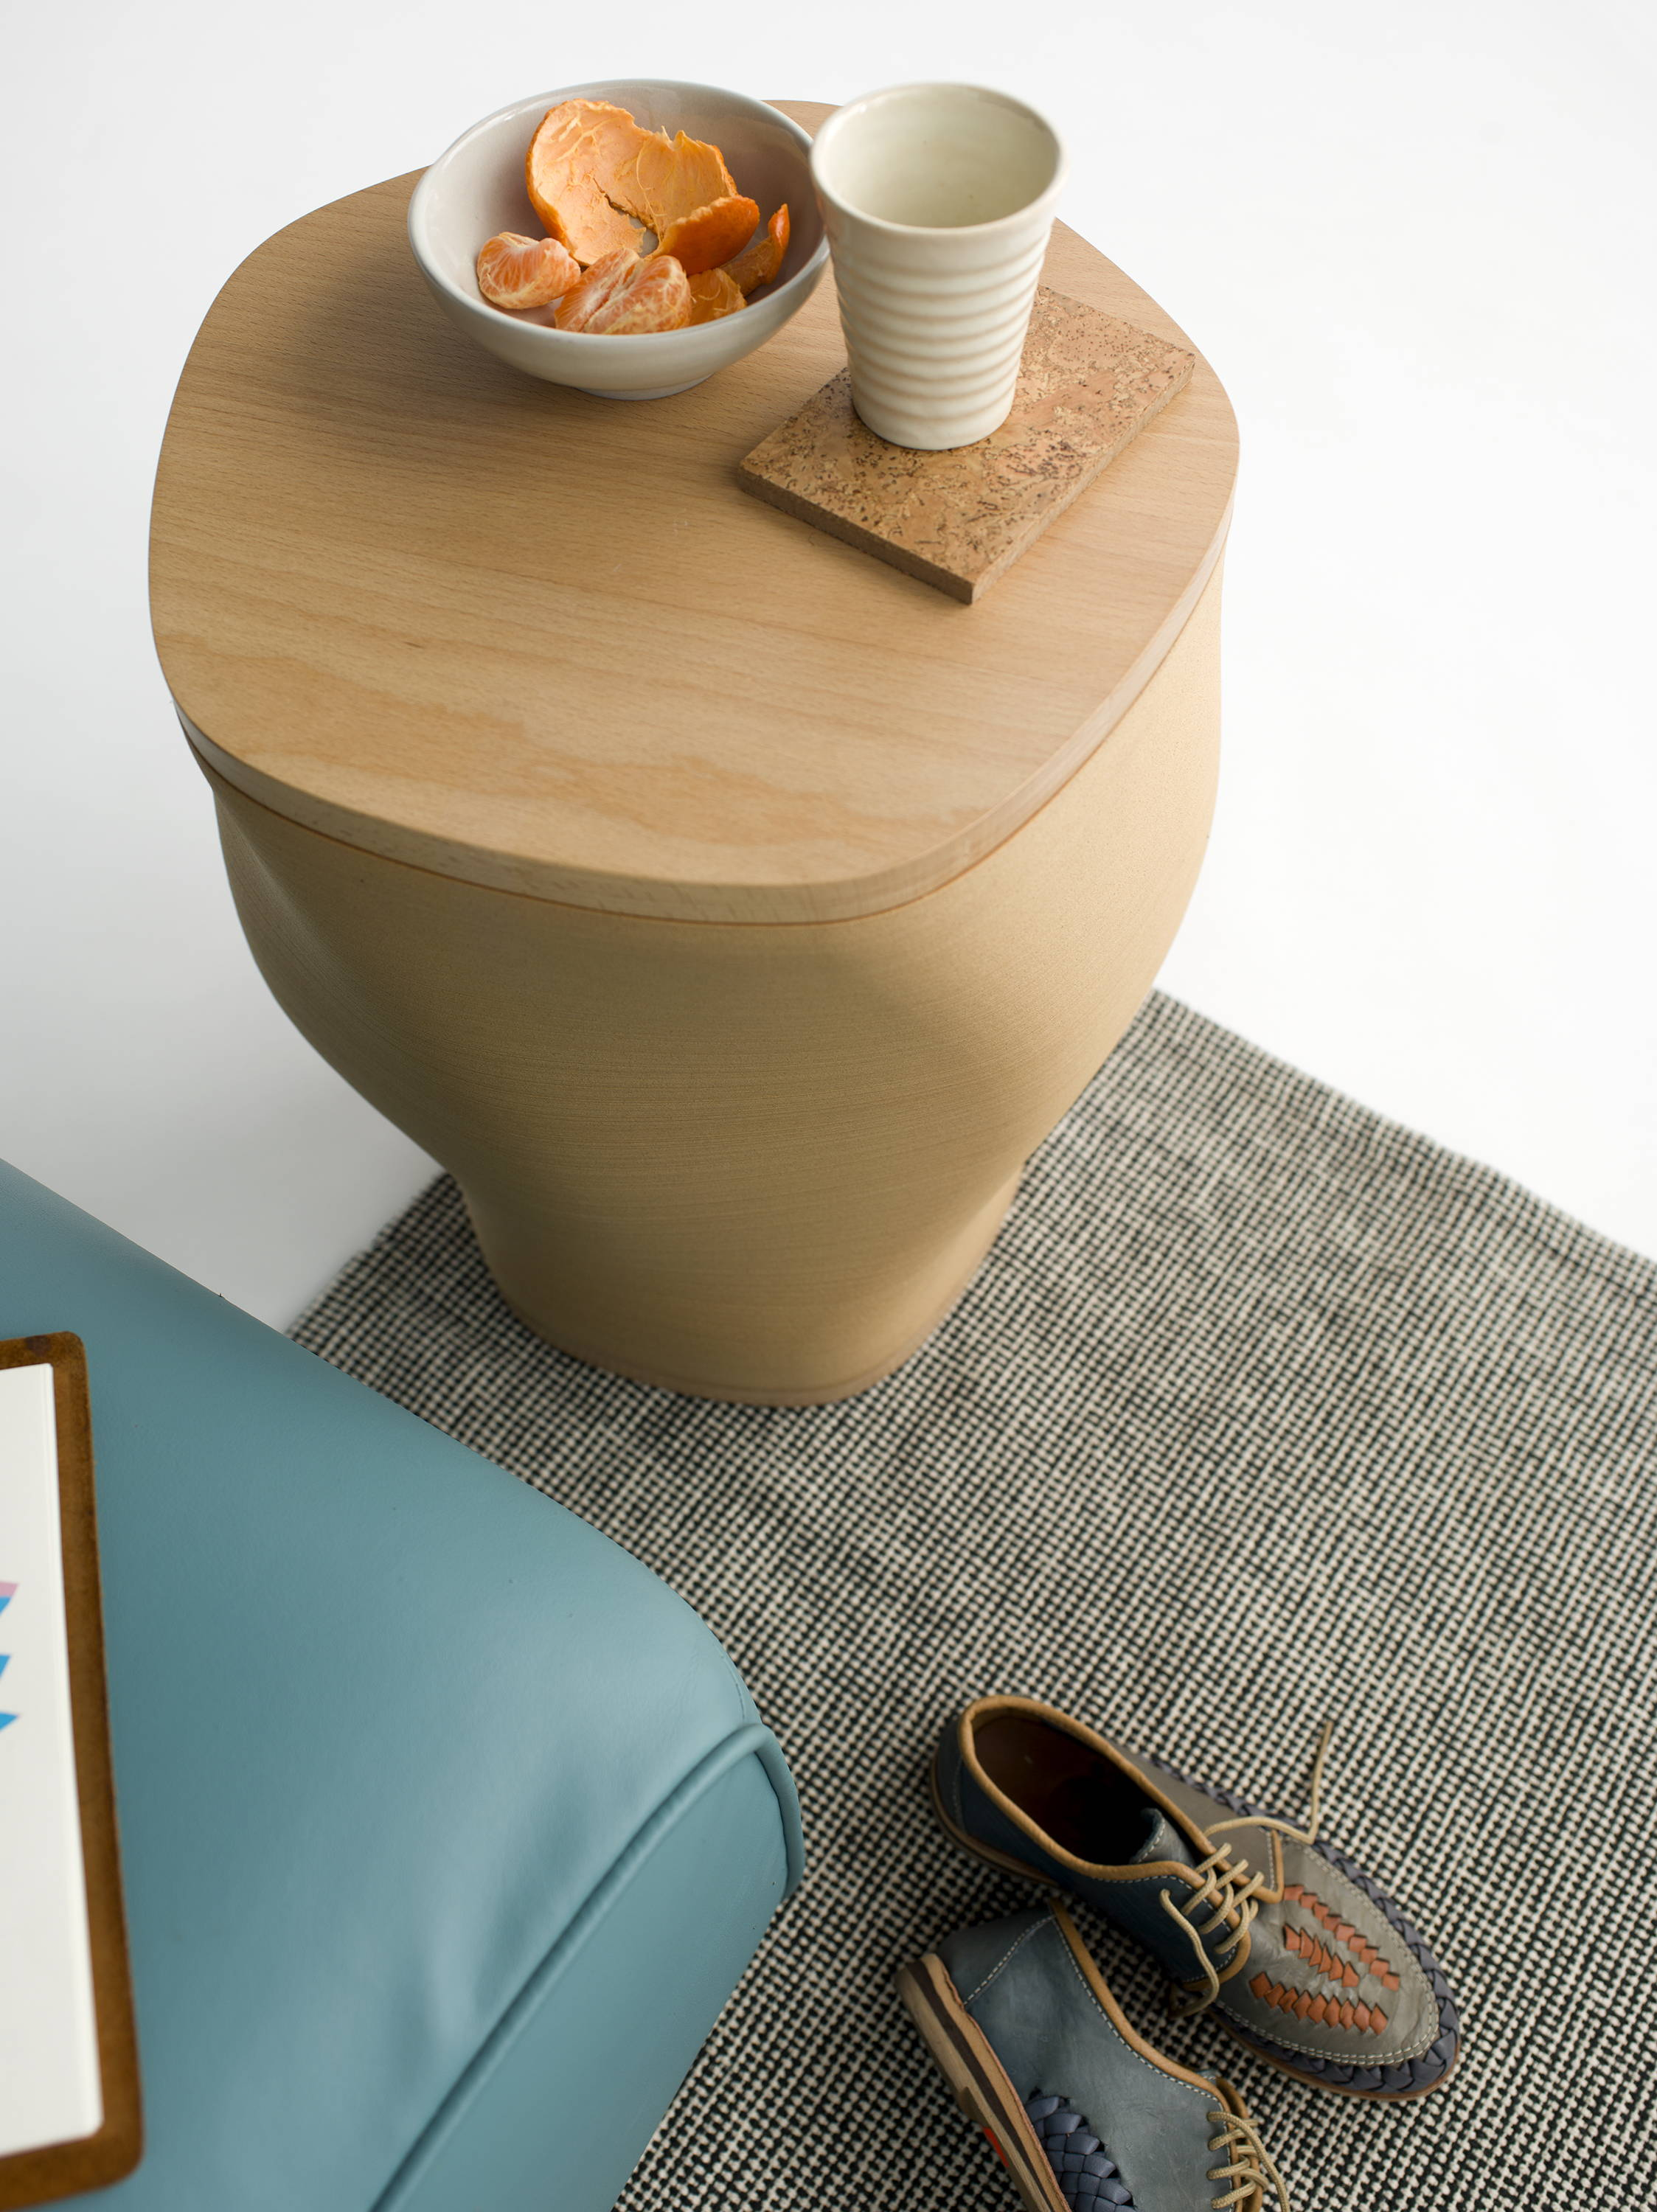 Side table made of hardwood and wood fiber with food bowl and cup on surface